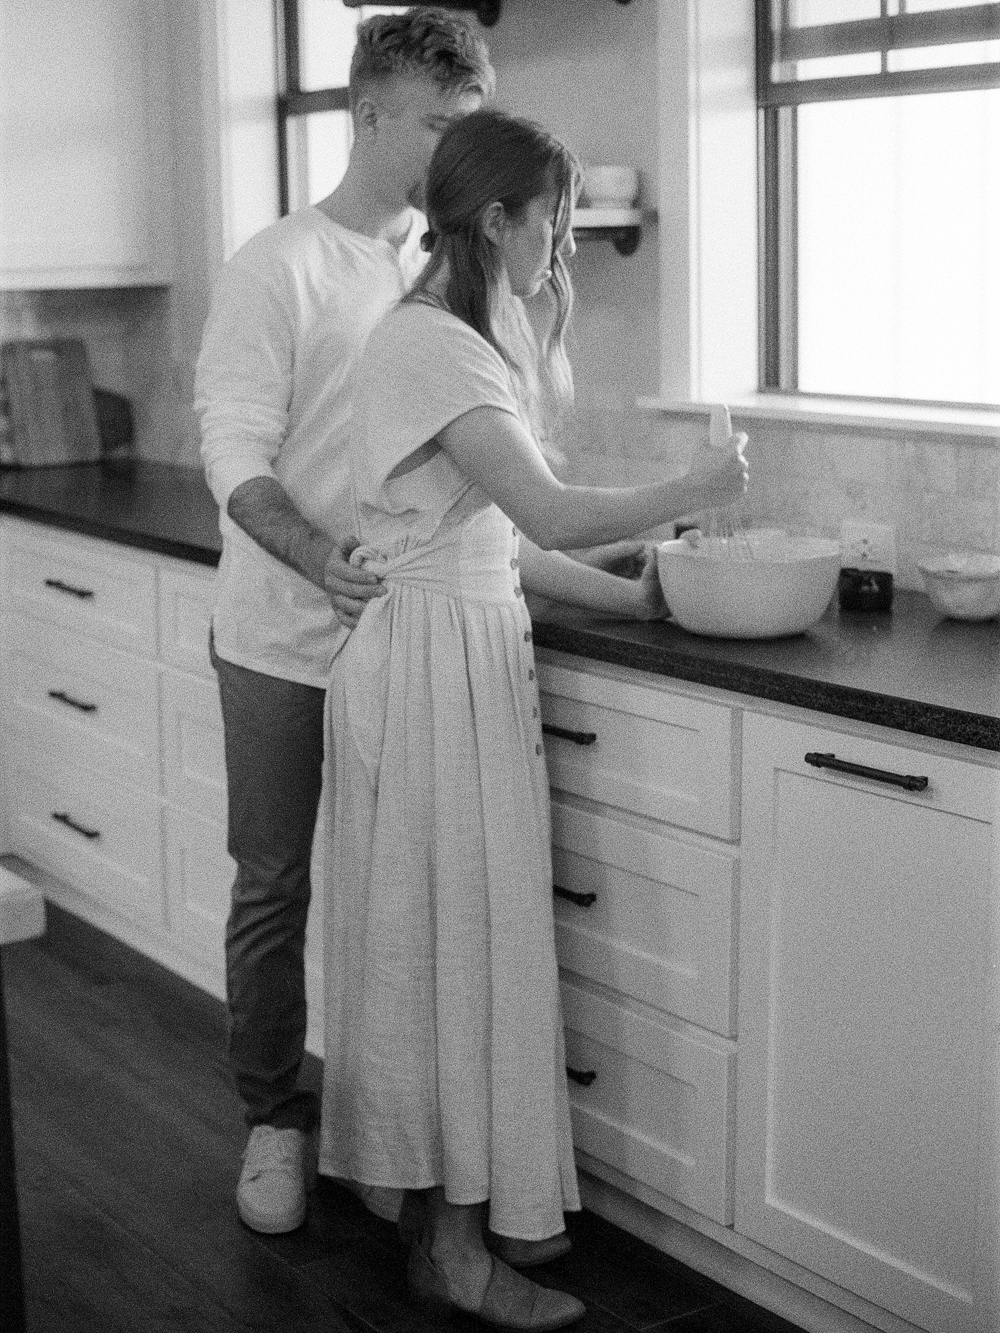 at home engagement session - Christine Gosch - featured on Magnolia Rouge - film photographer - elopement and intimate wedding photographer-4.jpg